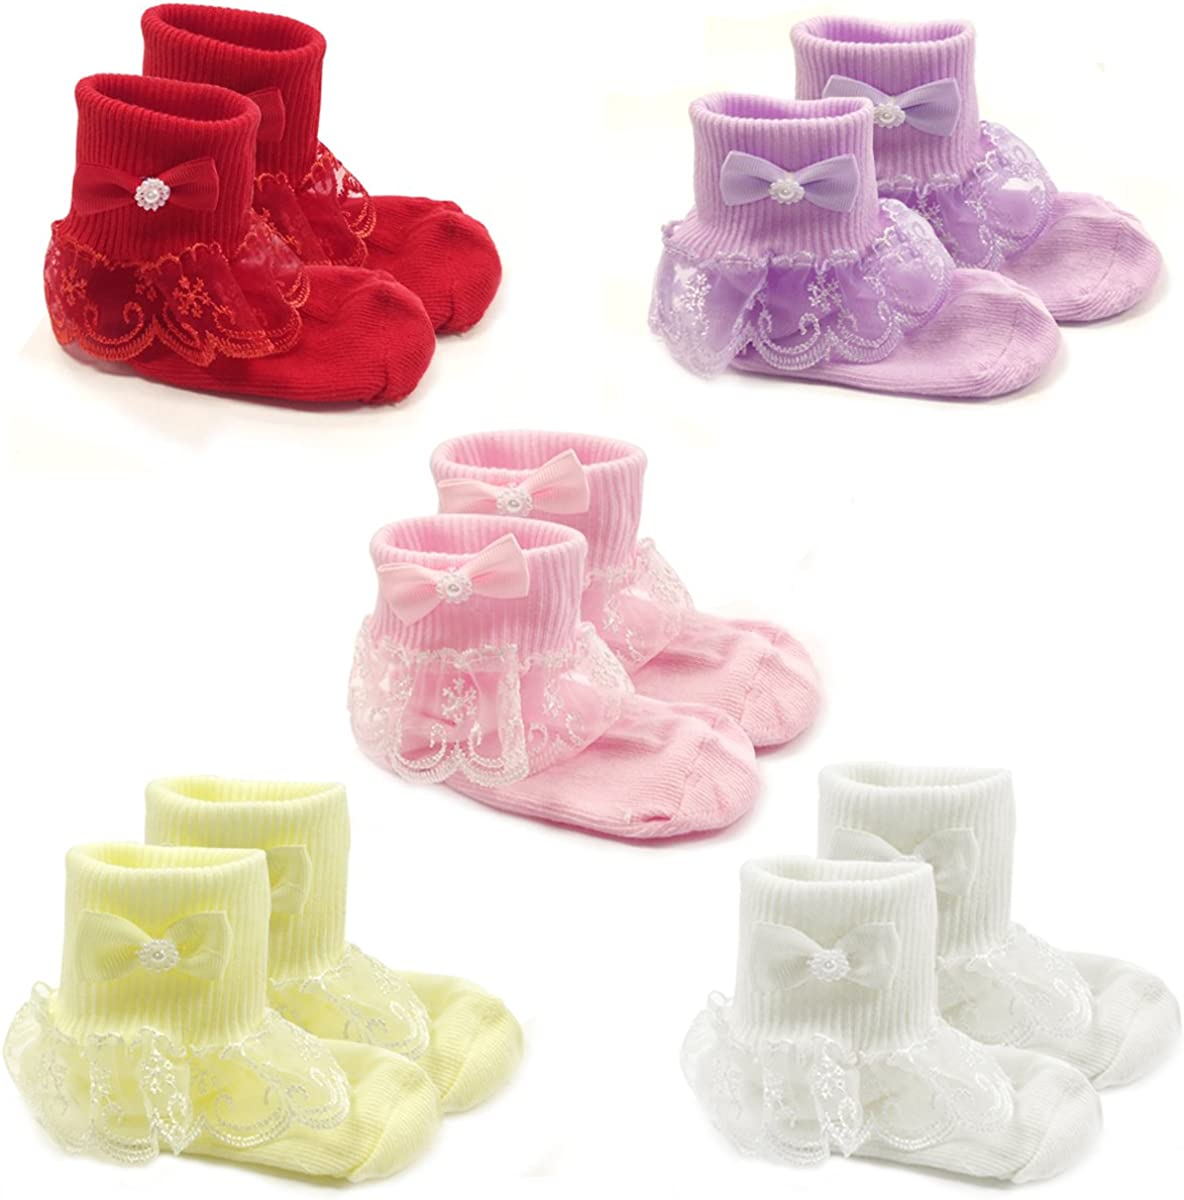 Wrapables Snowy Lace Ruffle Cuff Socks for Toddler Girl, Set of 5